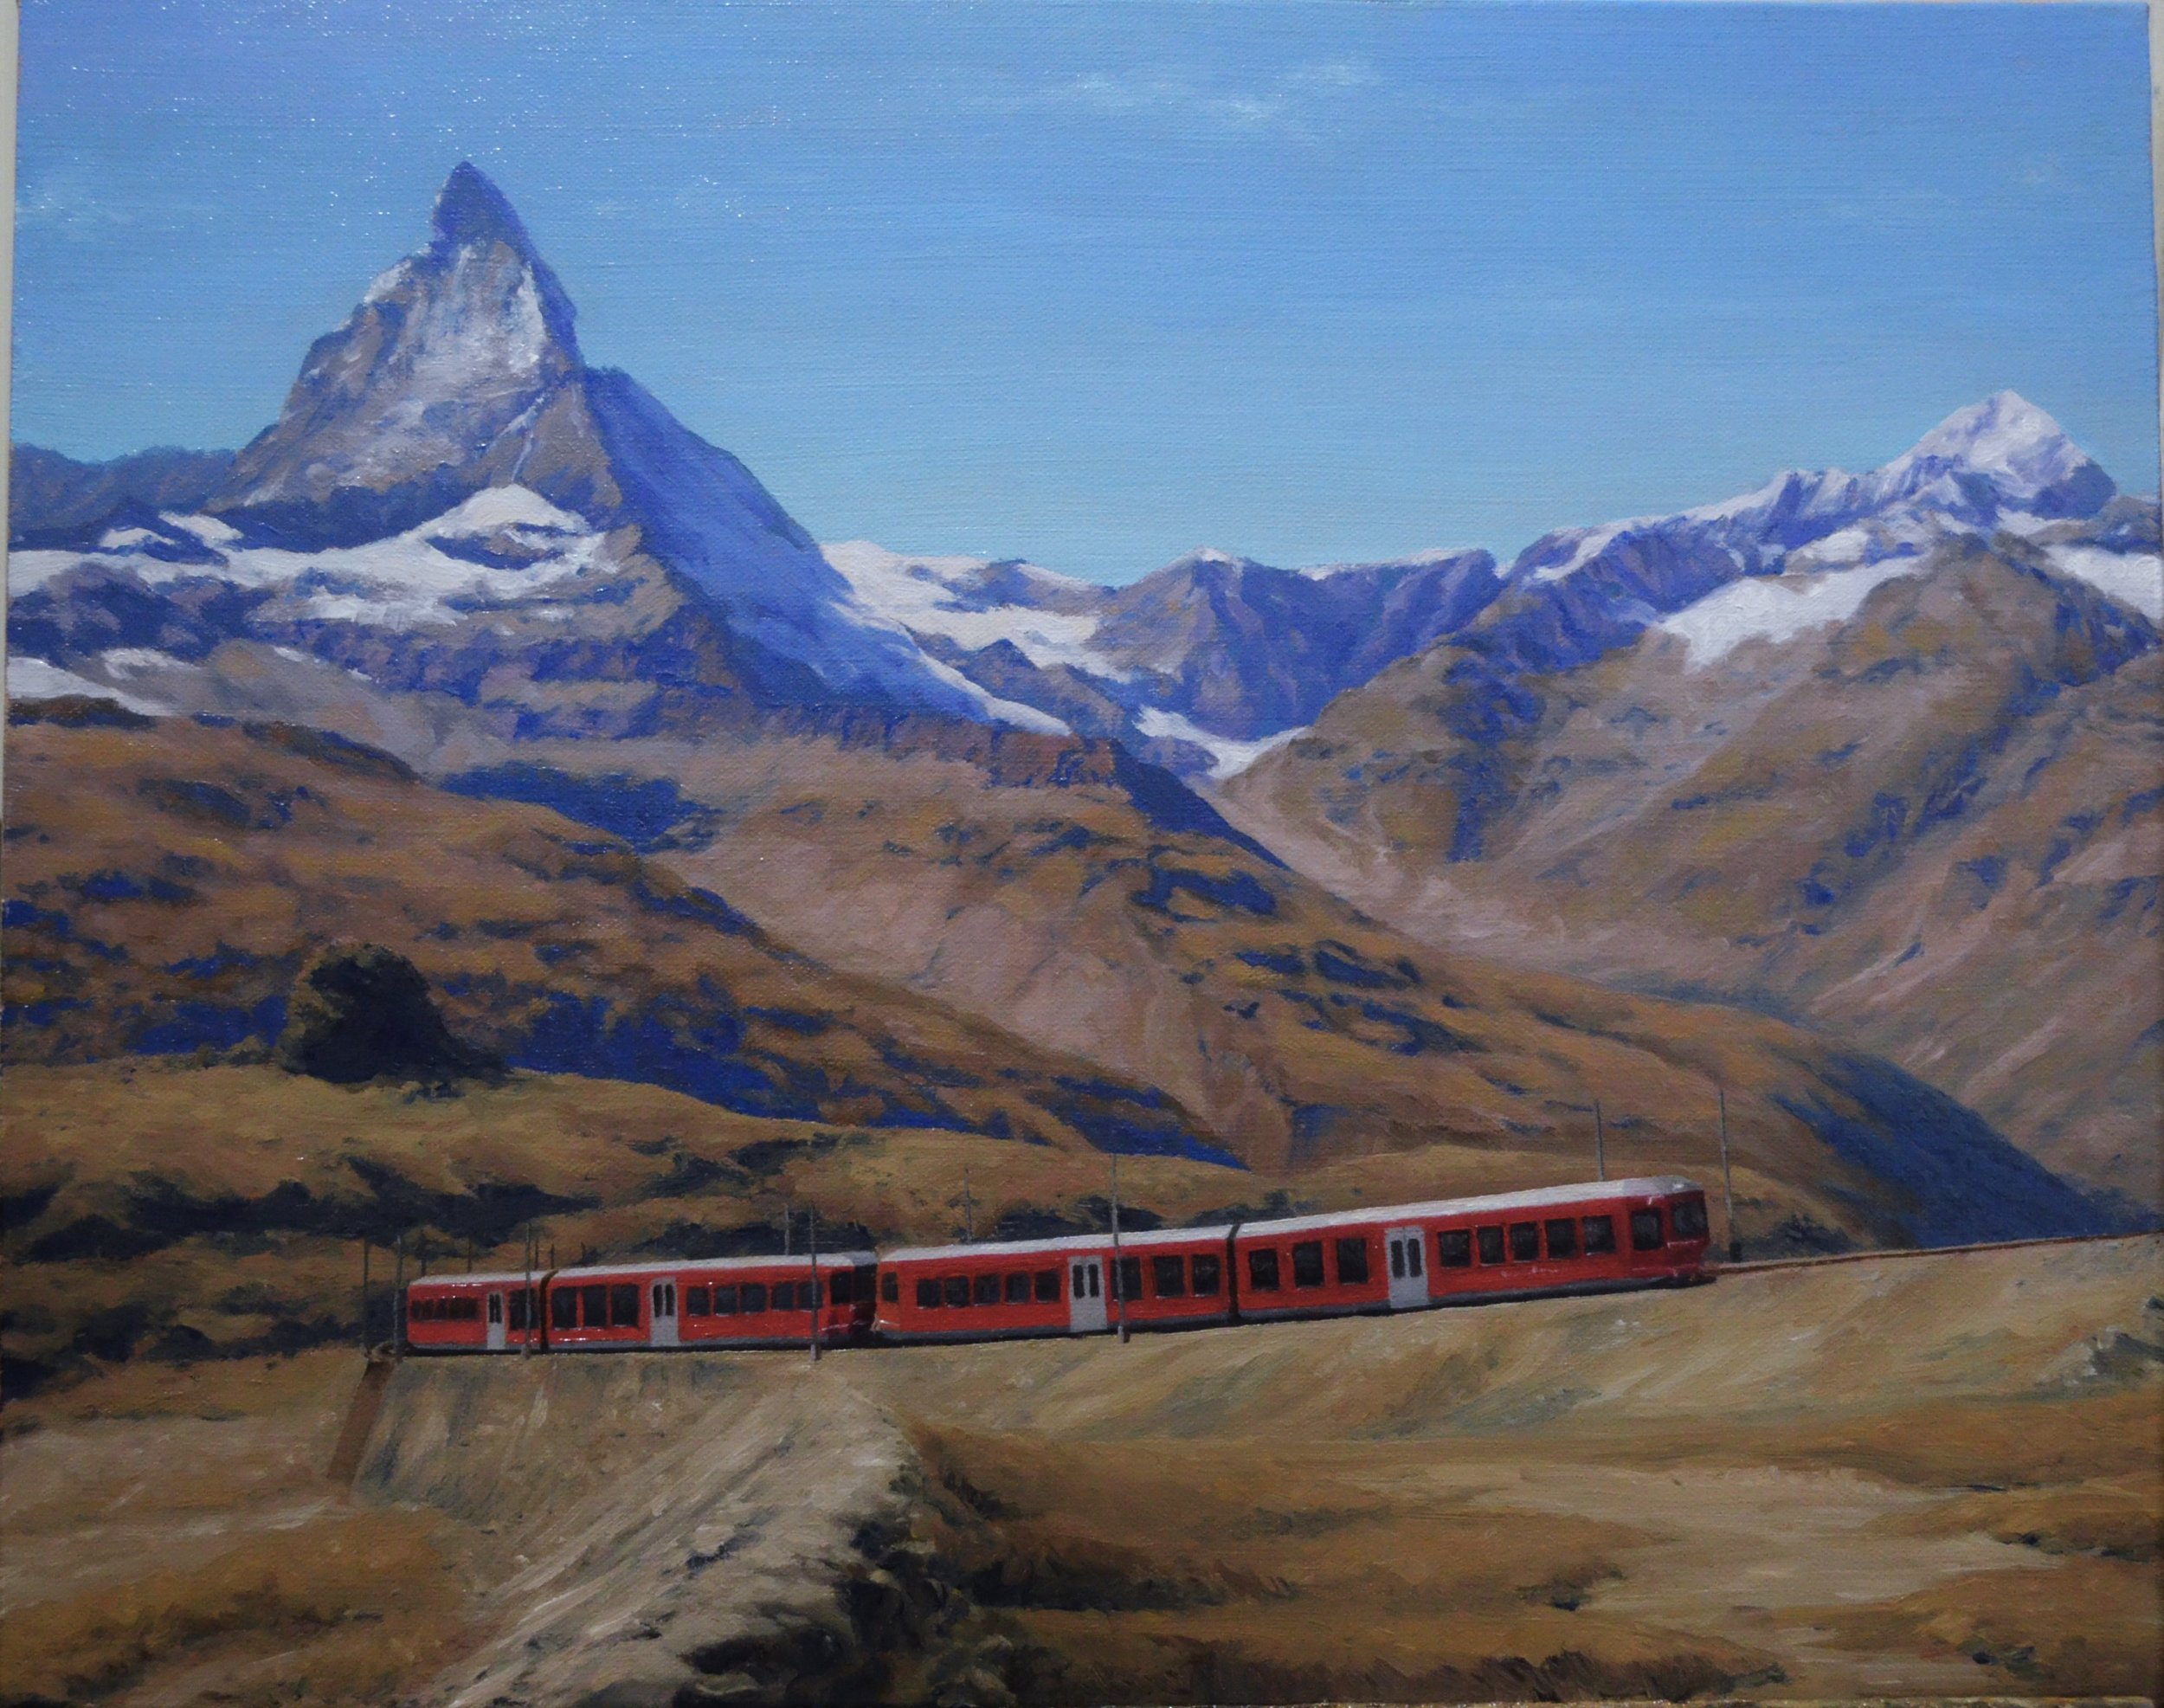 The afternoon train to Matterhorn